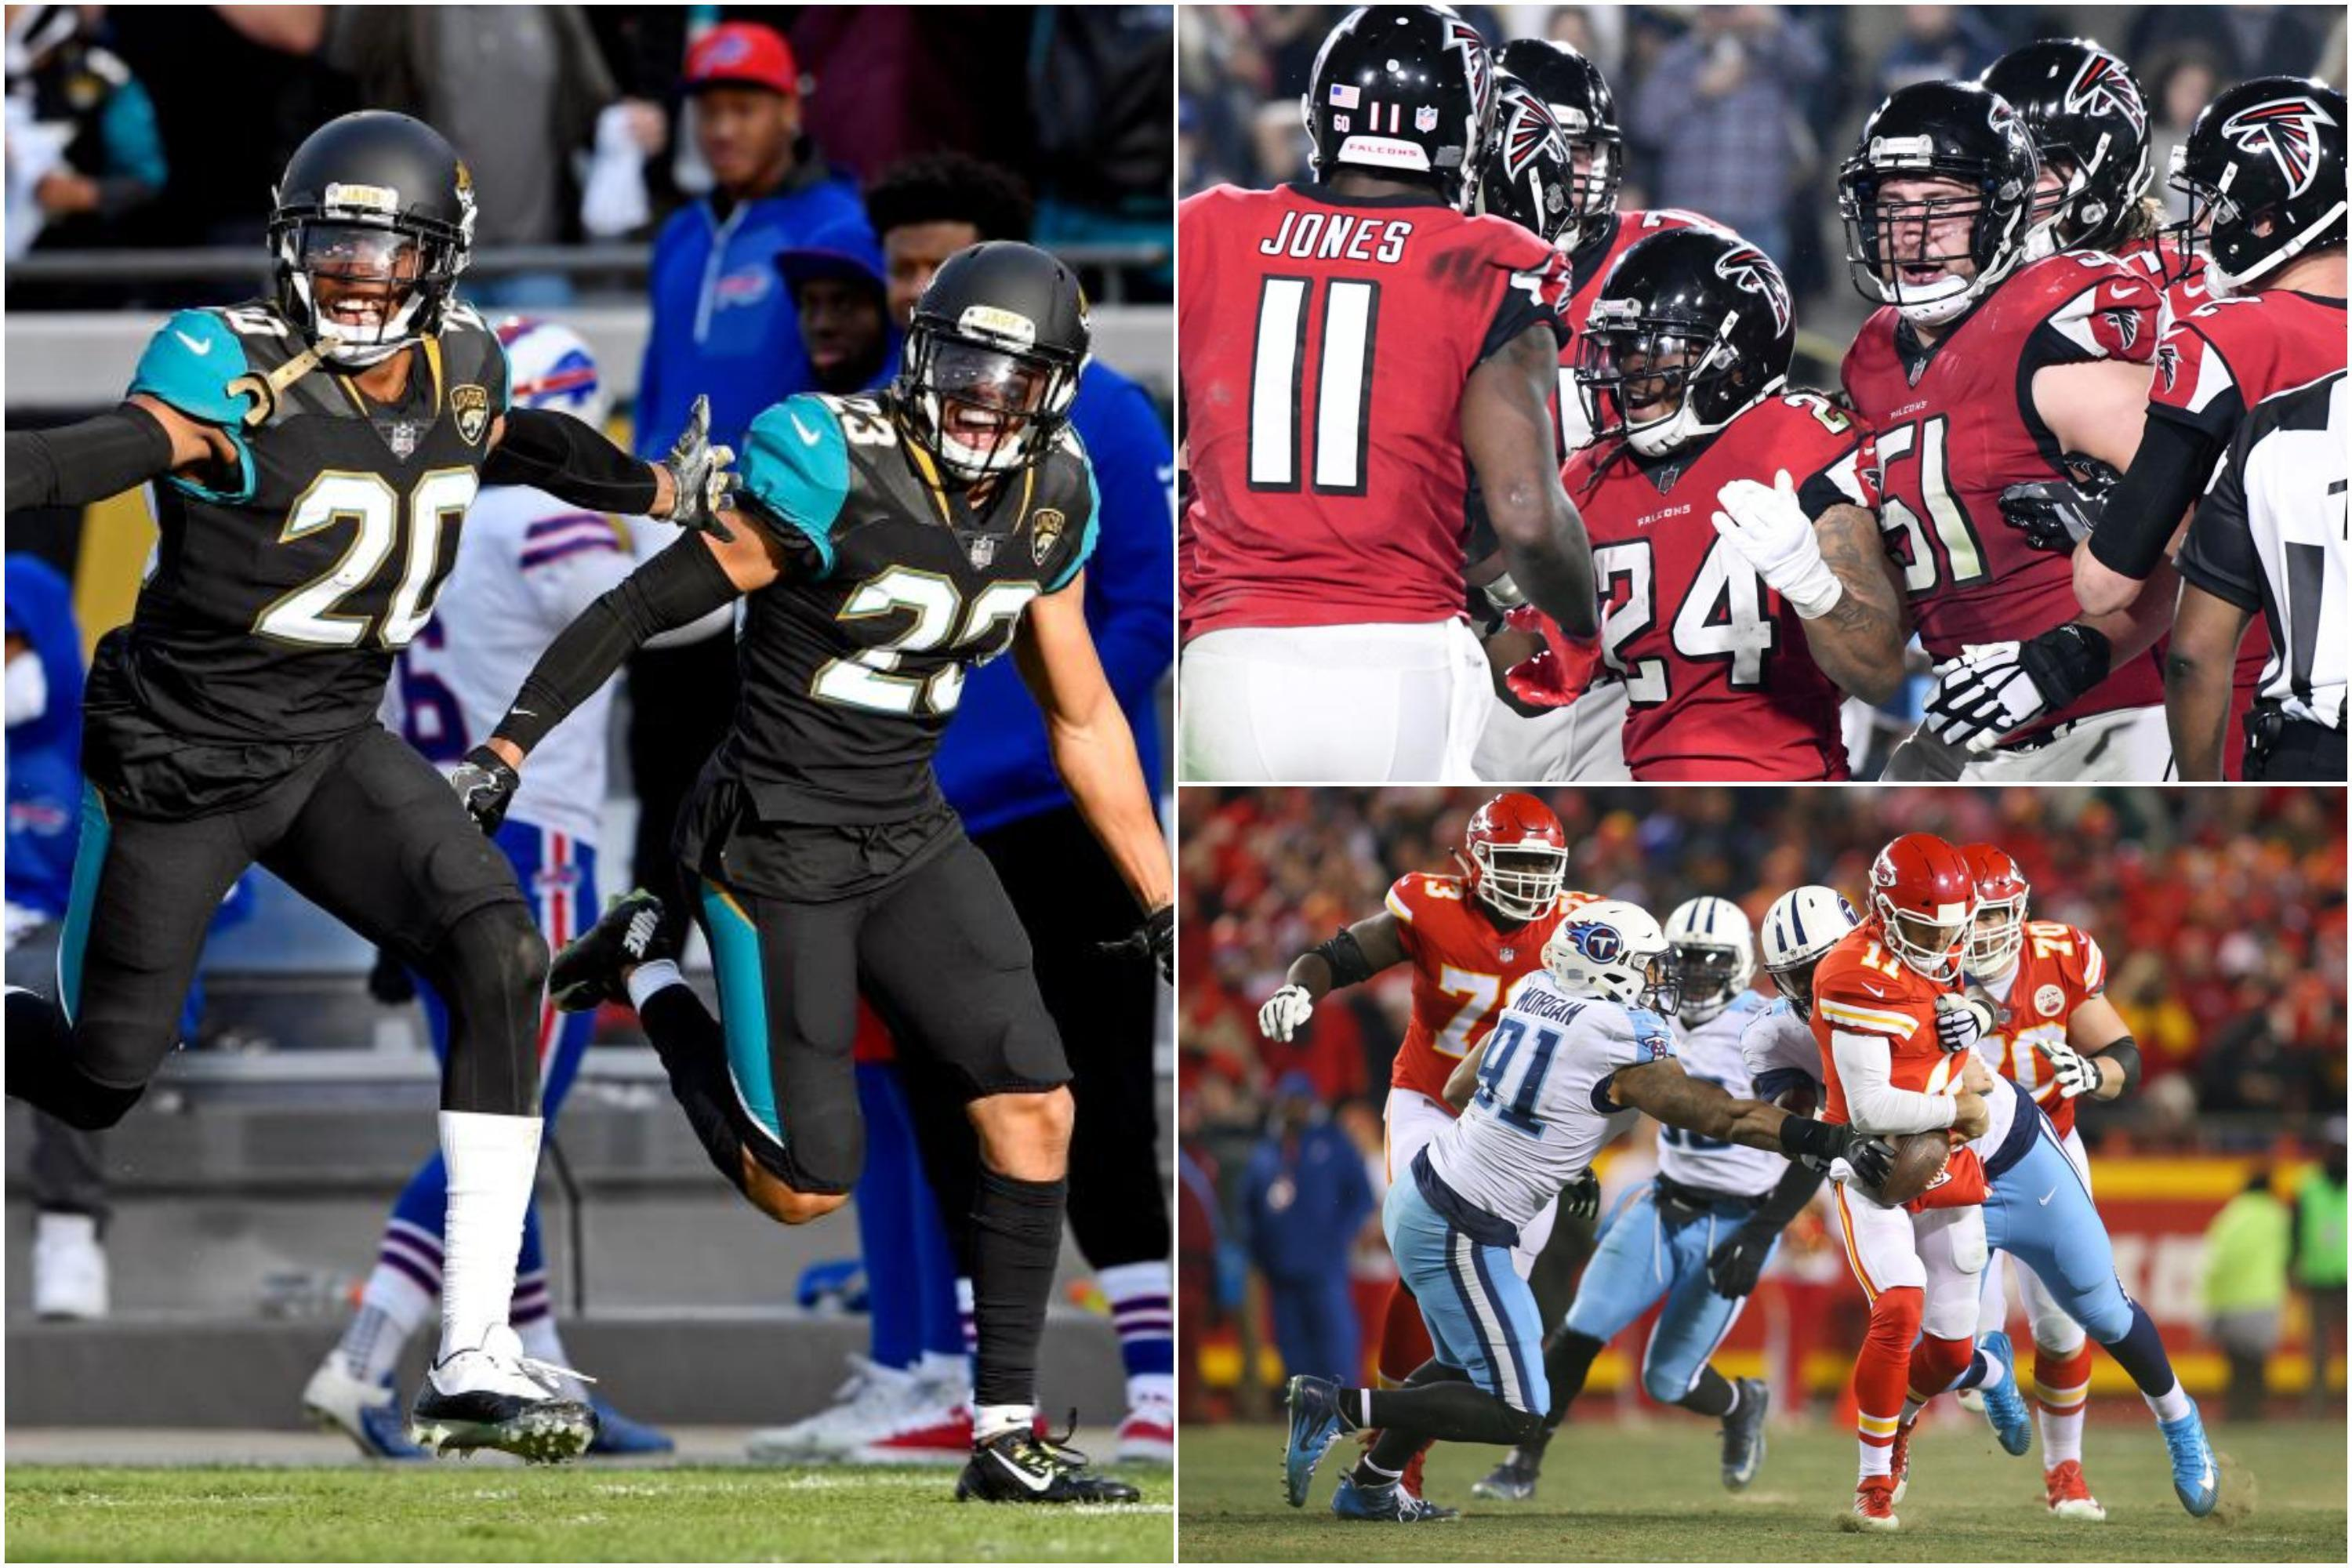 NFL Wild Card playoffs: Atlanta's experience was key, Jacksonville stuck to what they know and Alex Smith may be done in Kansas City